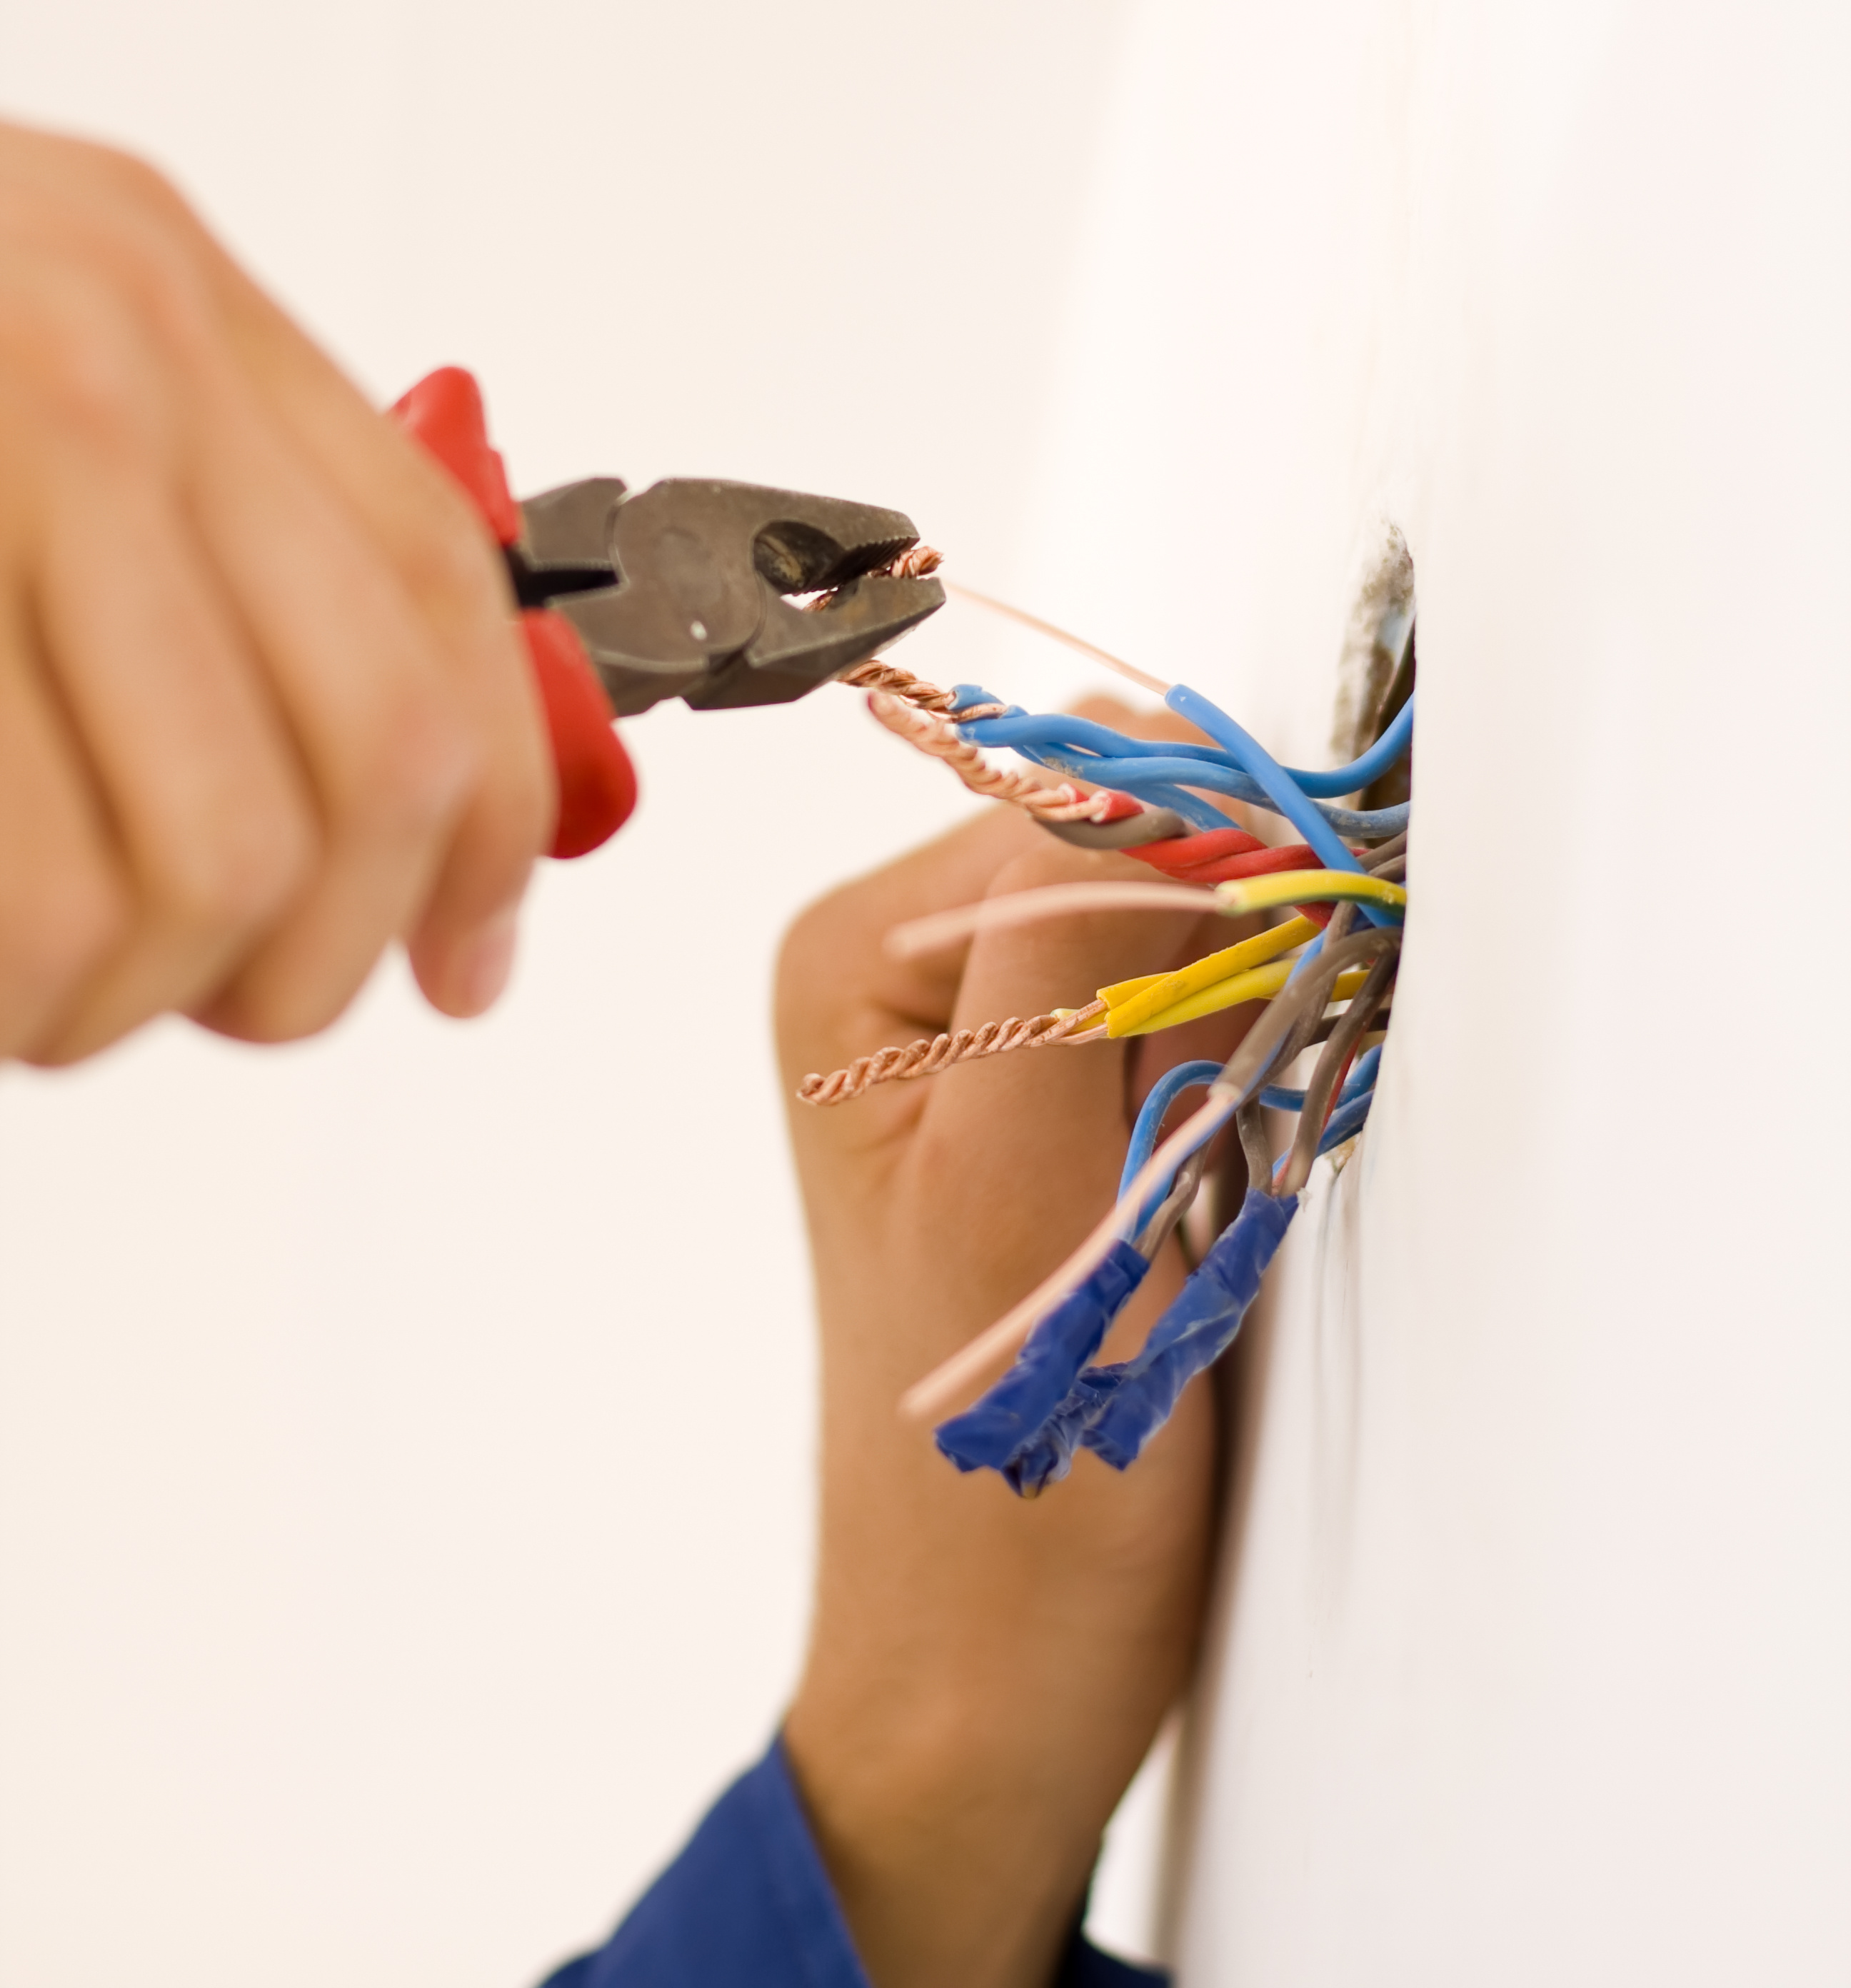 Contact Us - Trusted Electrical Contractor